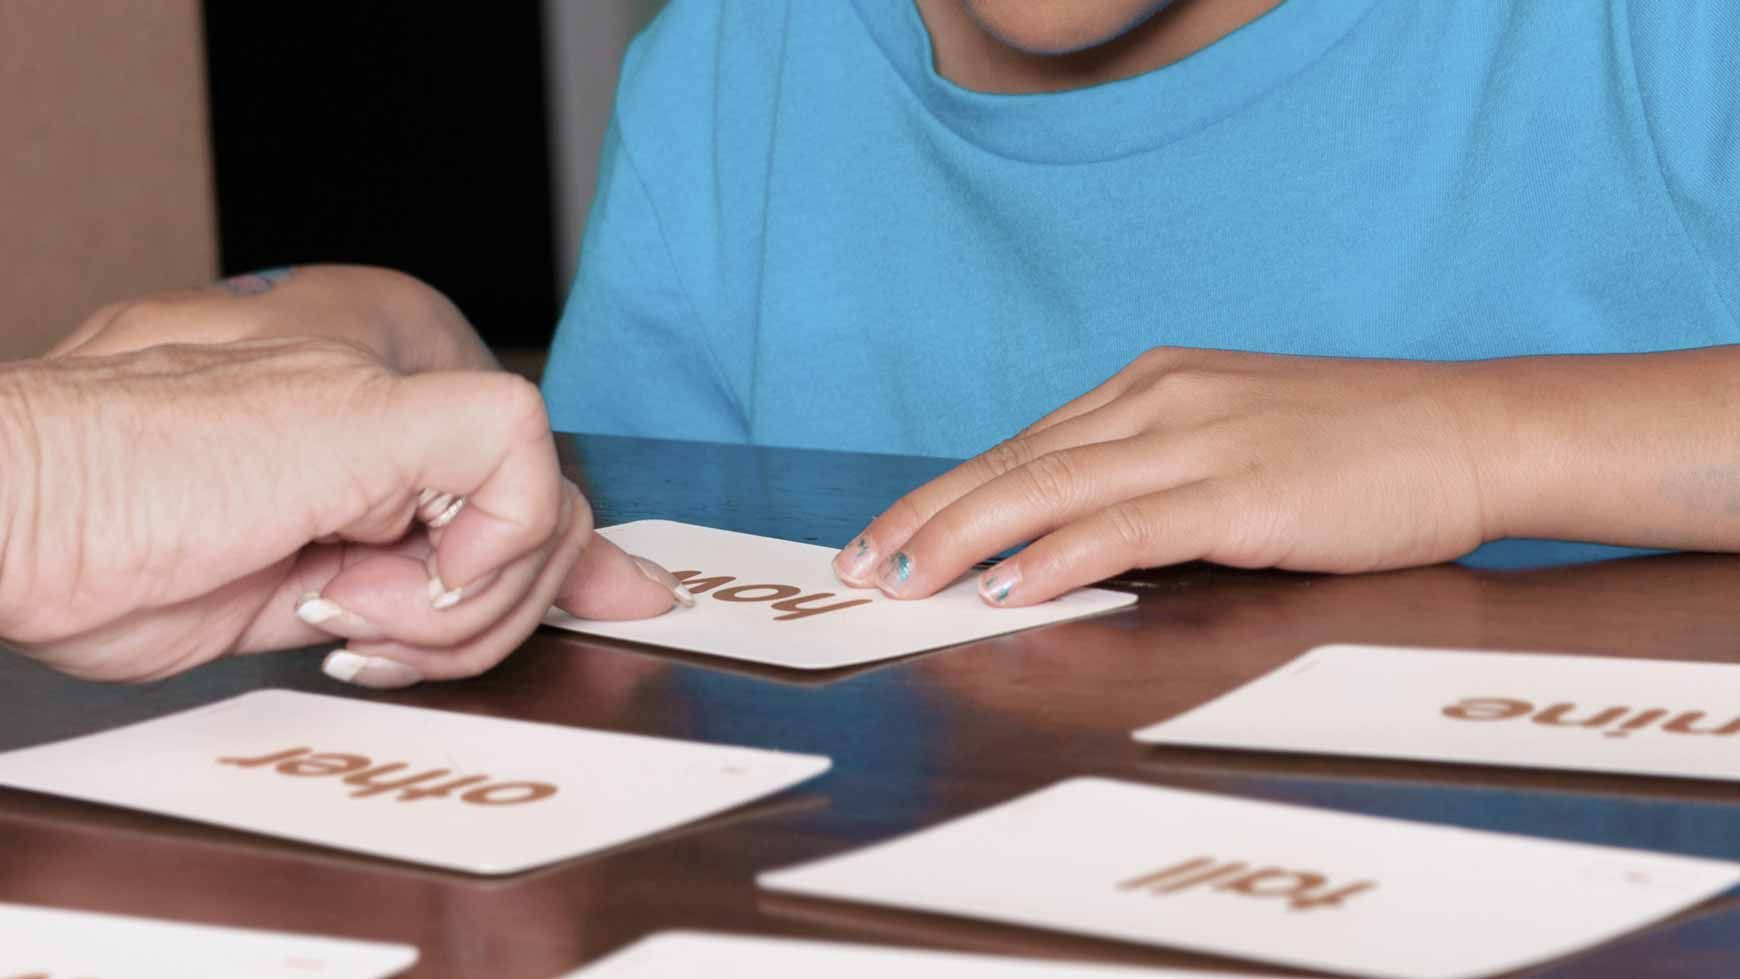 12 Tips To Help Kids With Dyslexia Learn Sight Words